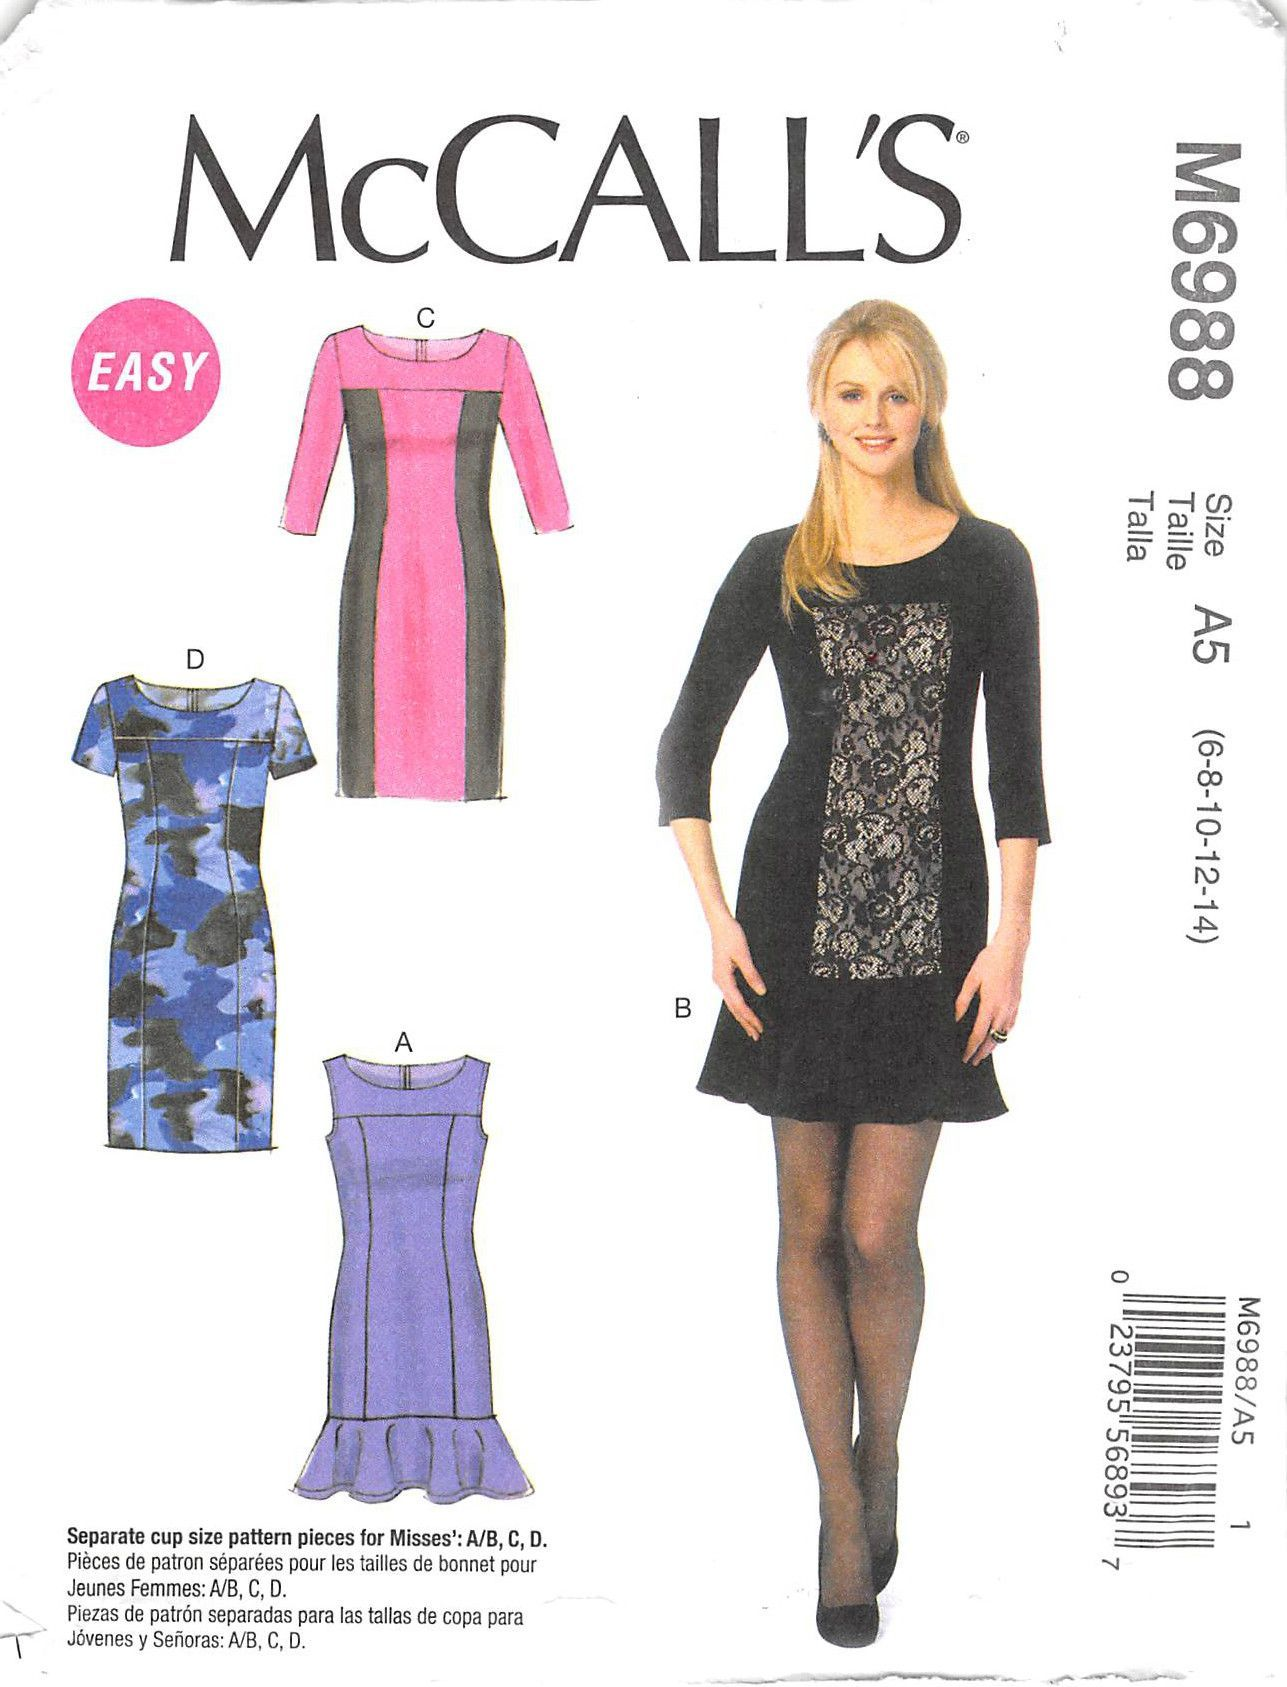 MCCALLS 6988 - FROM 2014 - UNCUT - MISSES DRESS | Sewing | Pinterest ...